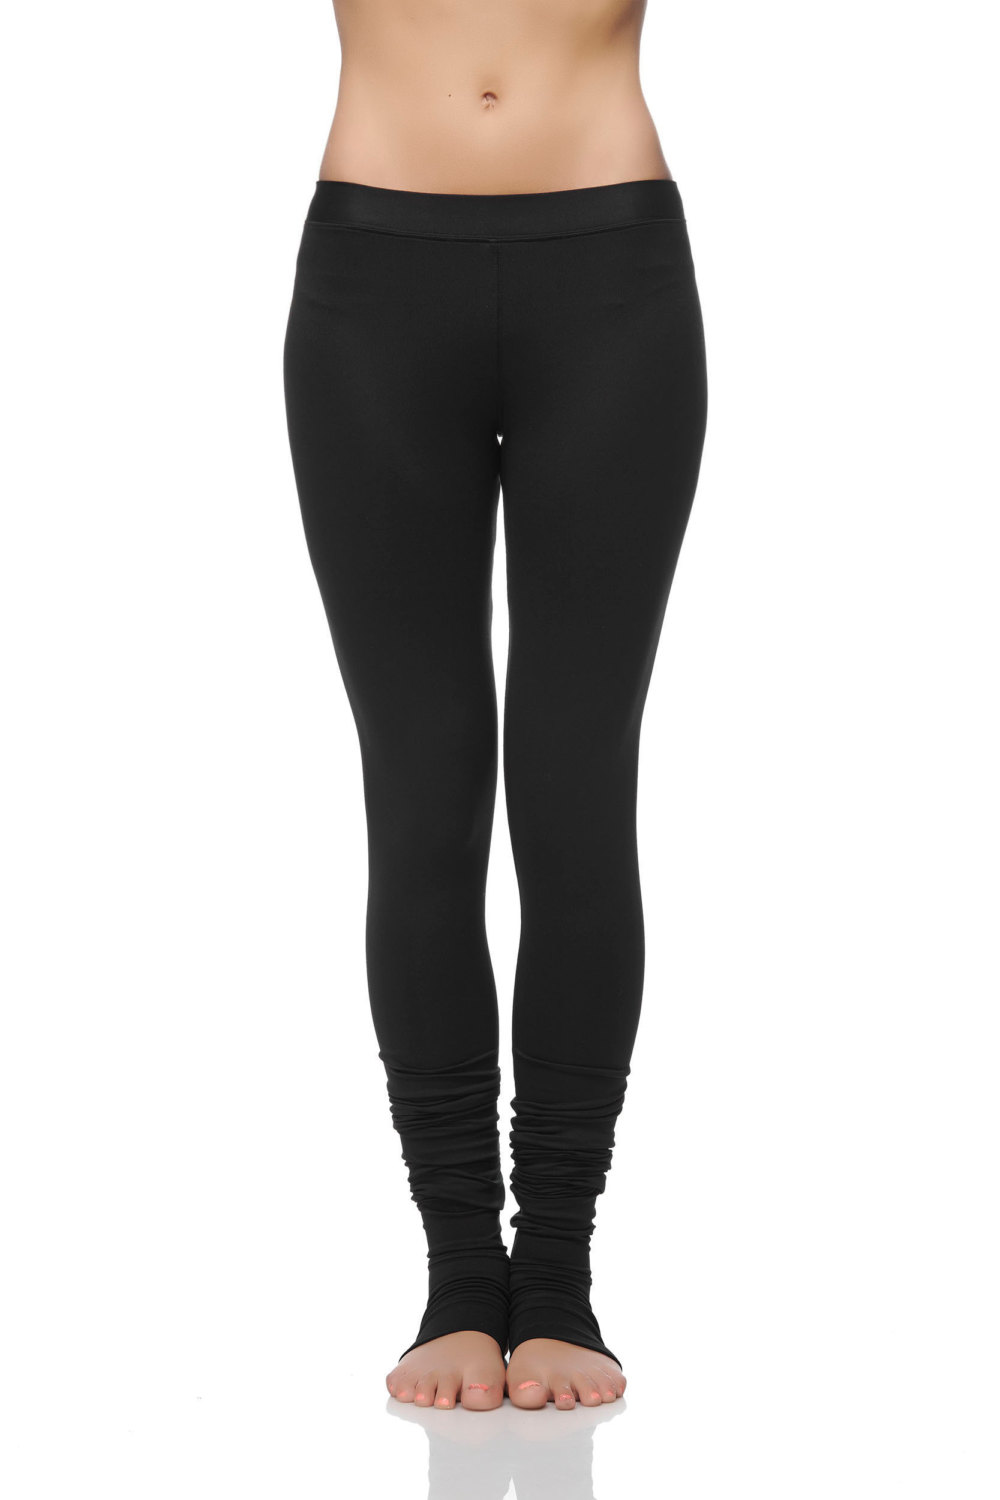 With over 3, reviews, 90 Degree By Reflex yoga pants are easily one of the most popular options on Amazon. That's because they're well-made yet affordable, with most of their many color and.